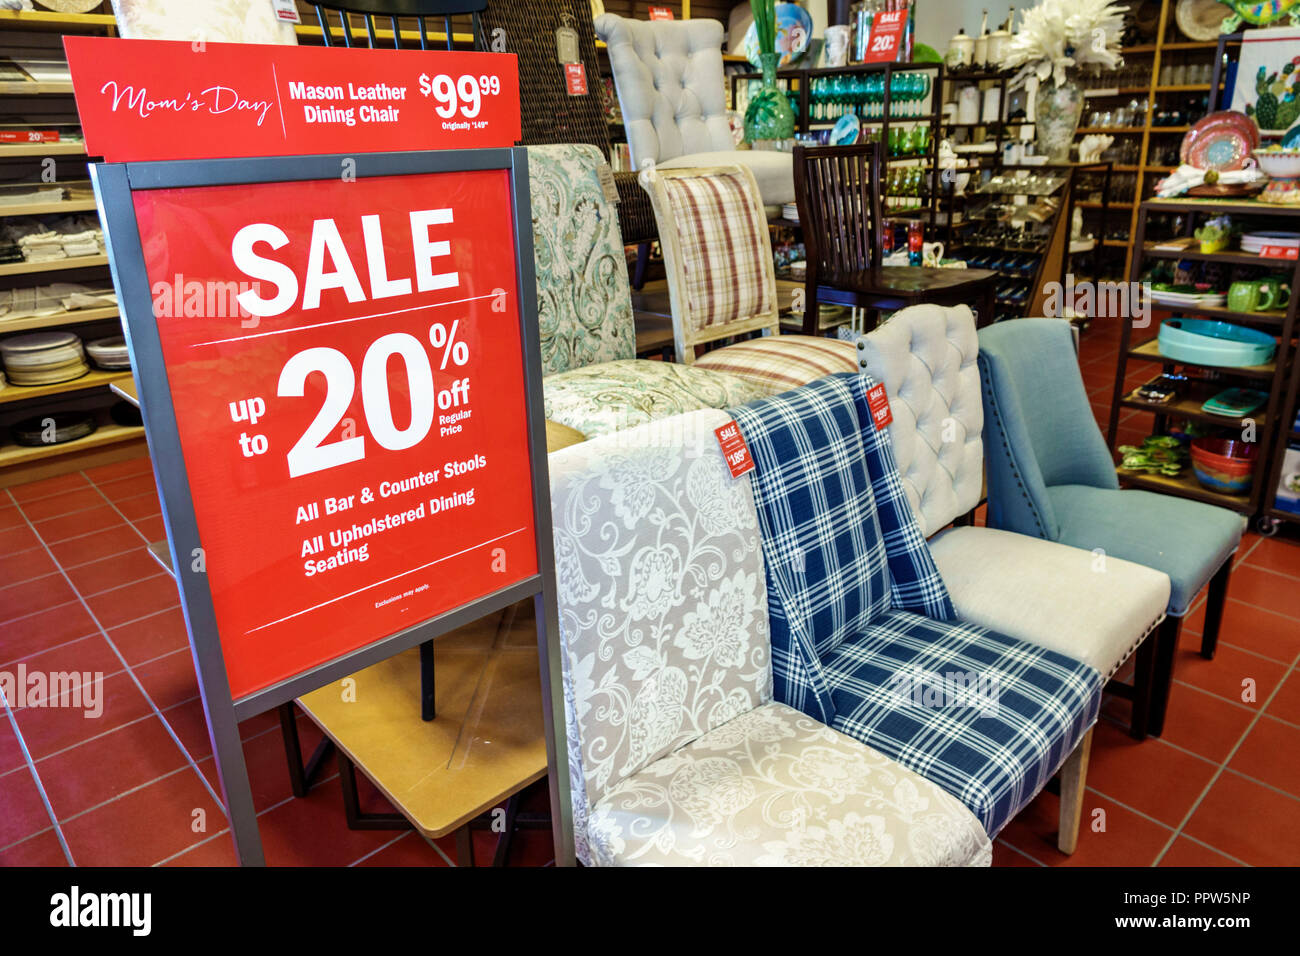 Miami Beach Florida Pier 1 Imports shopping sale display 20% upholstered chairs - Stock Image